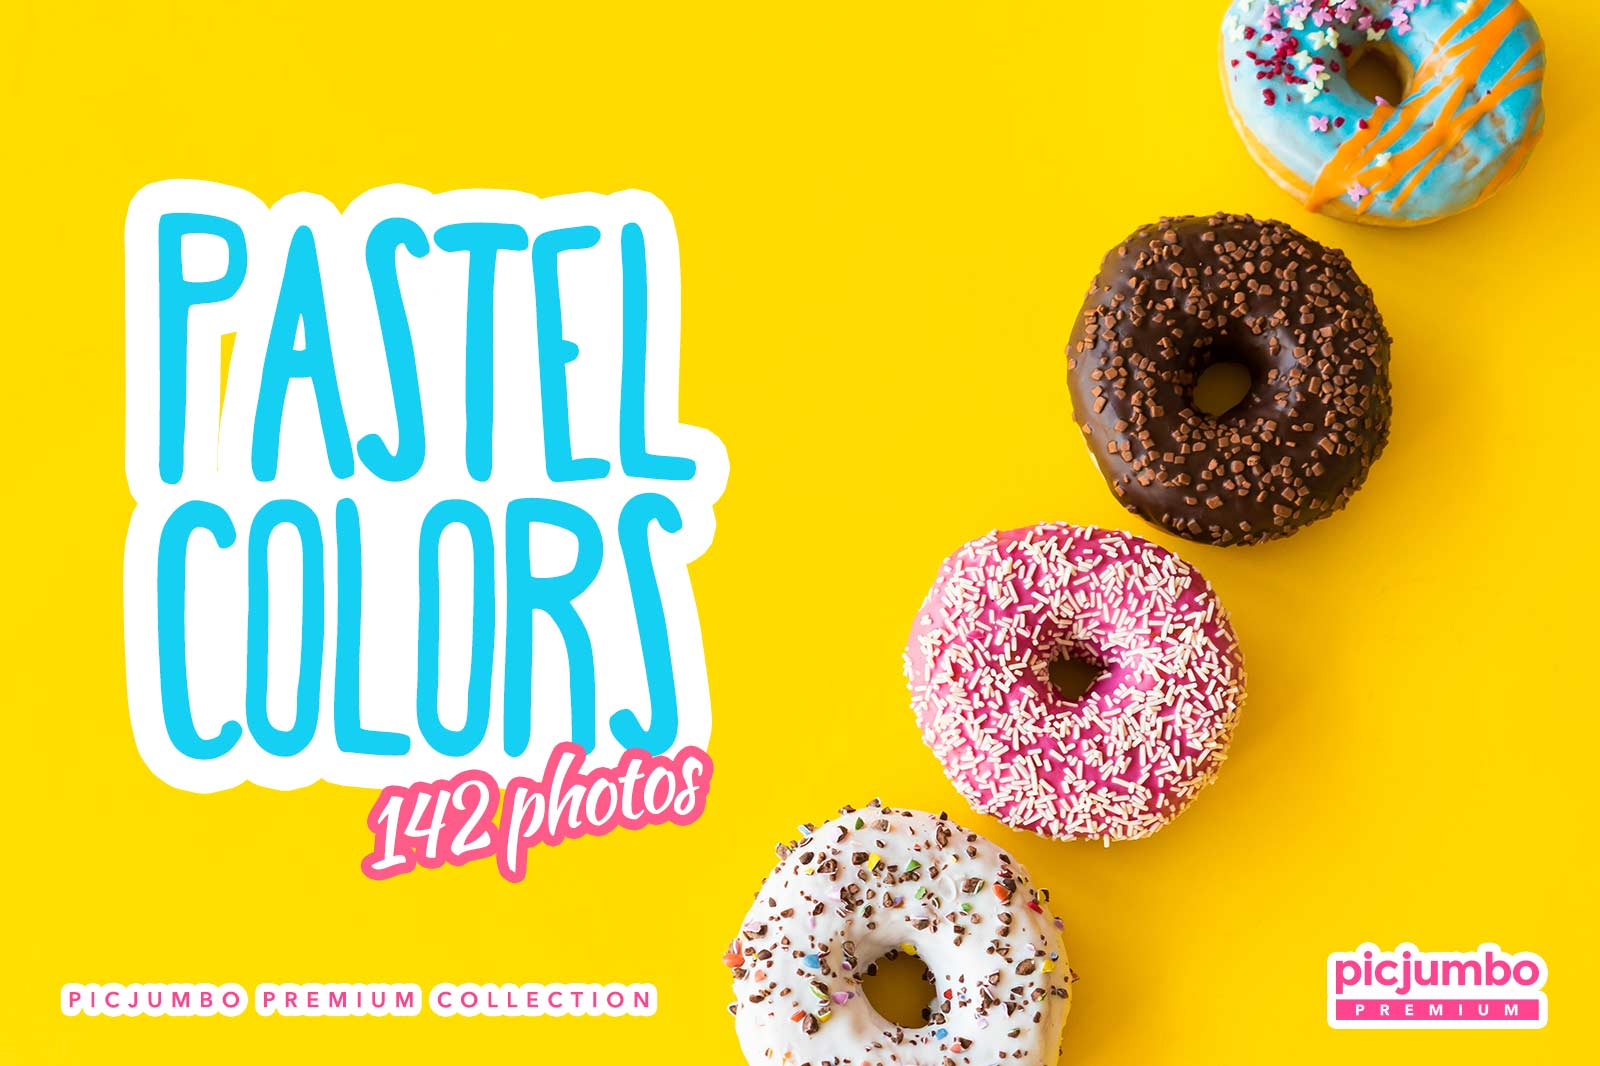 Pastel Colors — Join PREMIUM and get instant access to all photos from this collection!